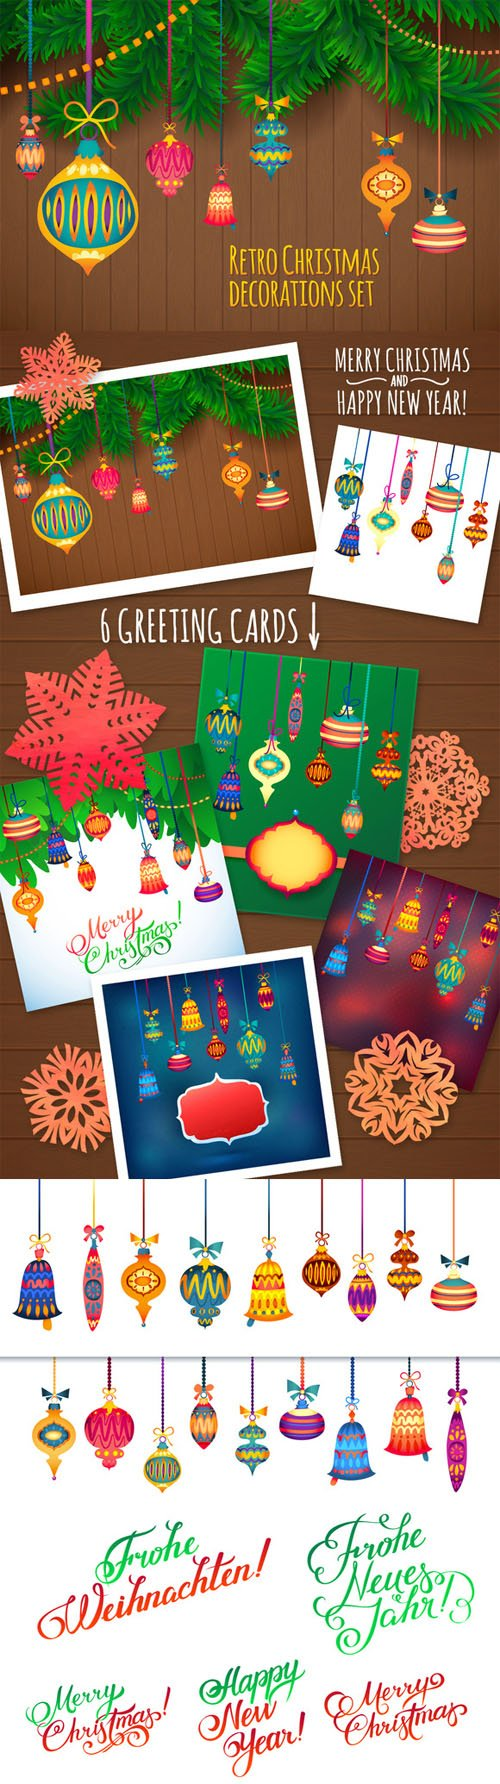 Merry Christmas Cards - Creativemarket 132482